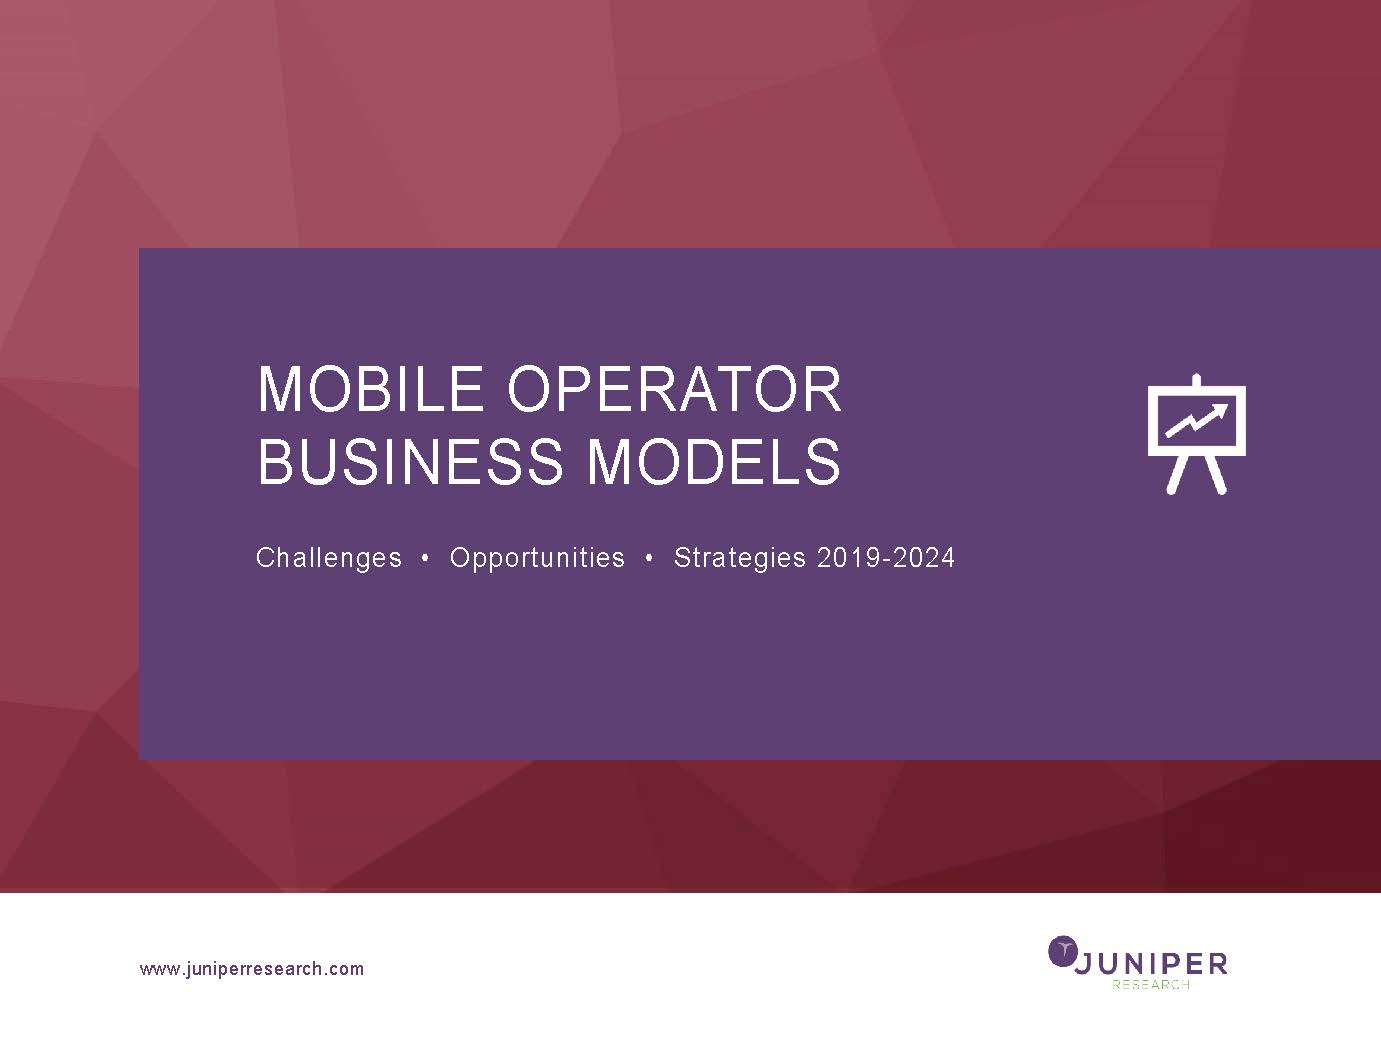 Mobile Operator Business Models: Challenges, Opportunities & Strategies 2019-2024 (NonHarvest)